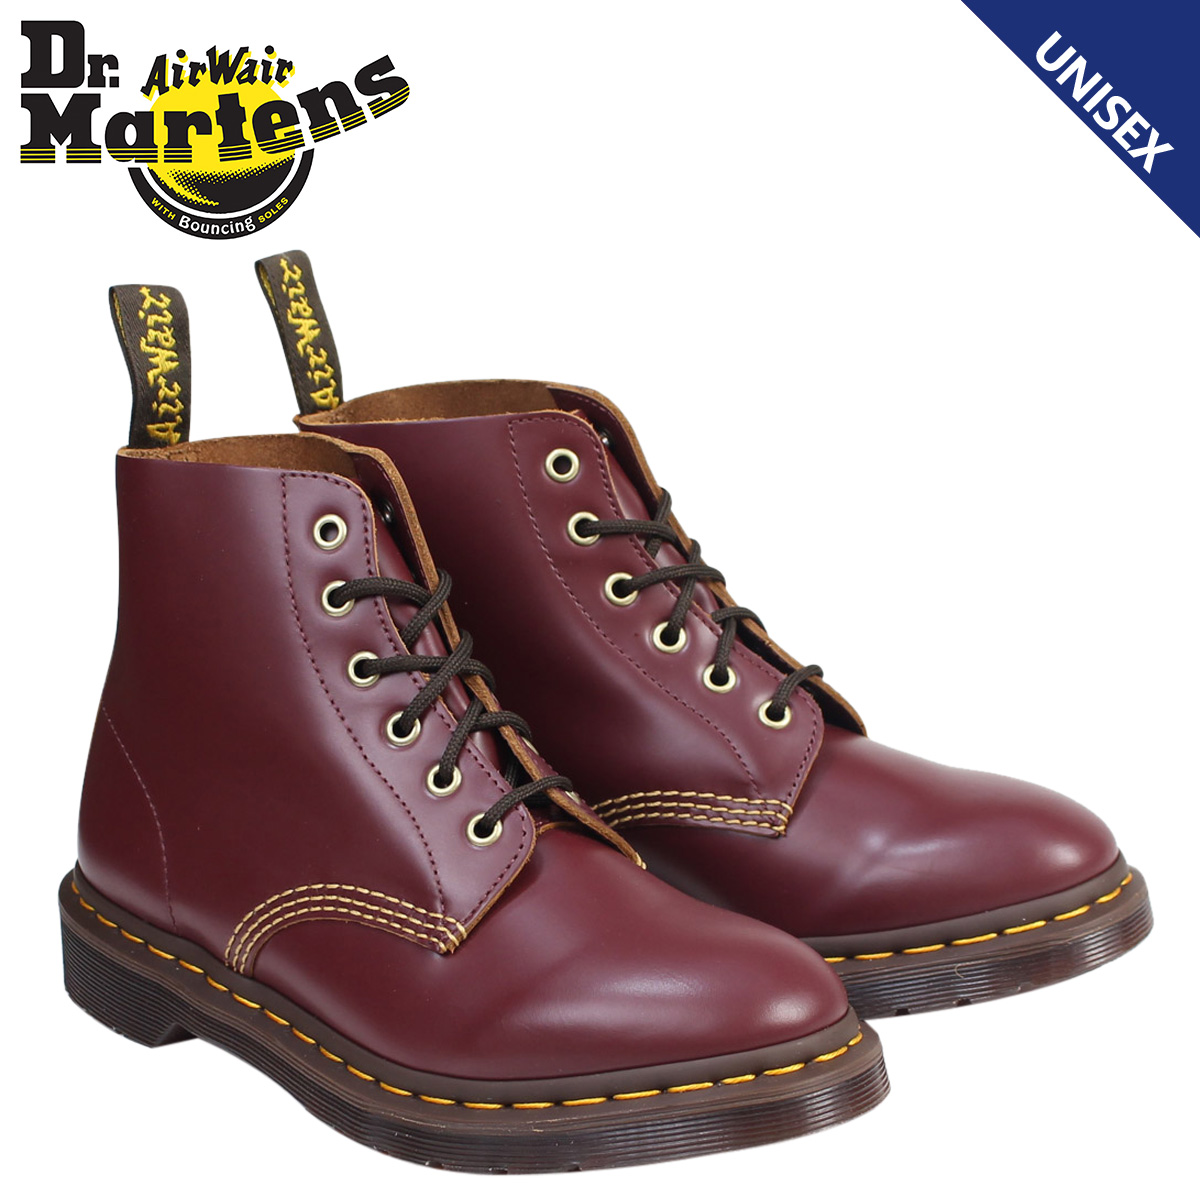 Doctor Martin 6 hall men gap Dis Dr.Martens boots ARCHIVE 101 6EYE BOOT R22701601 red